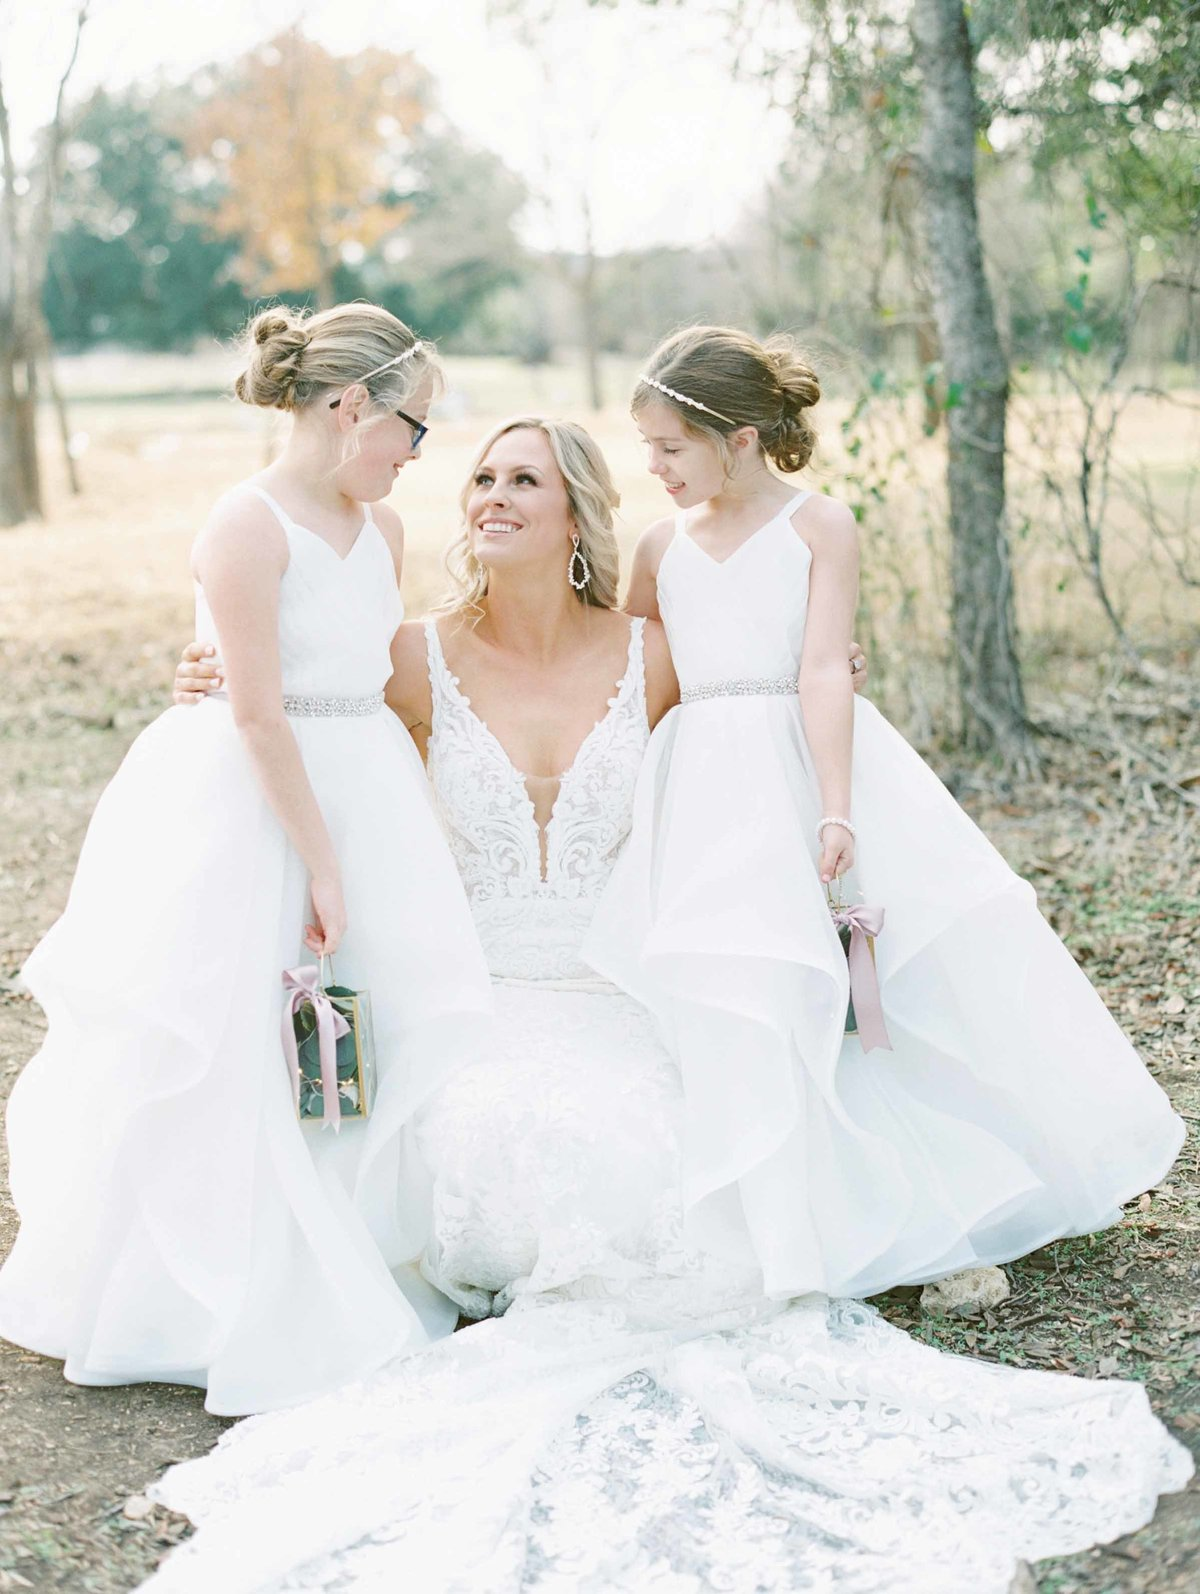 Angel_owens_photography_wedding23